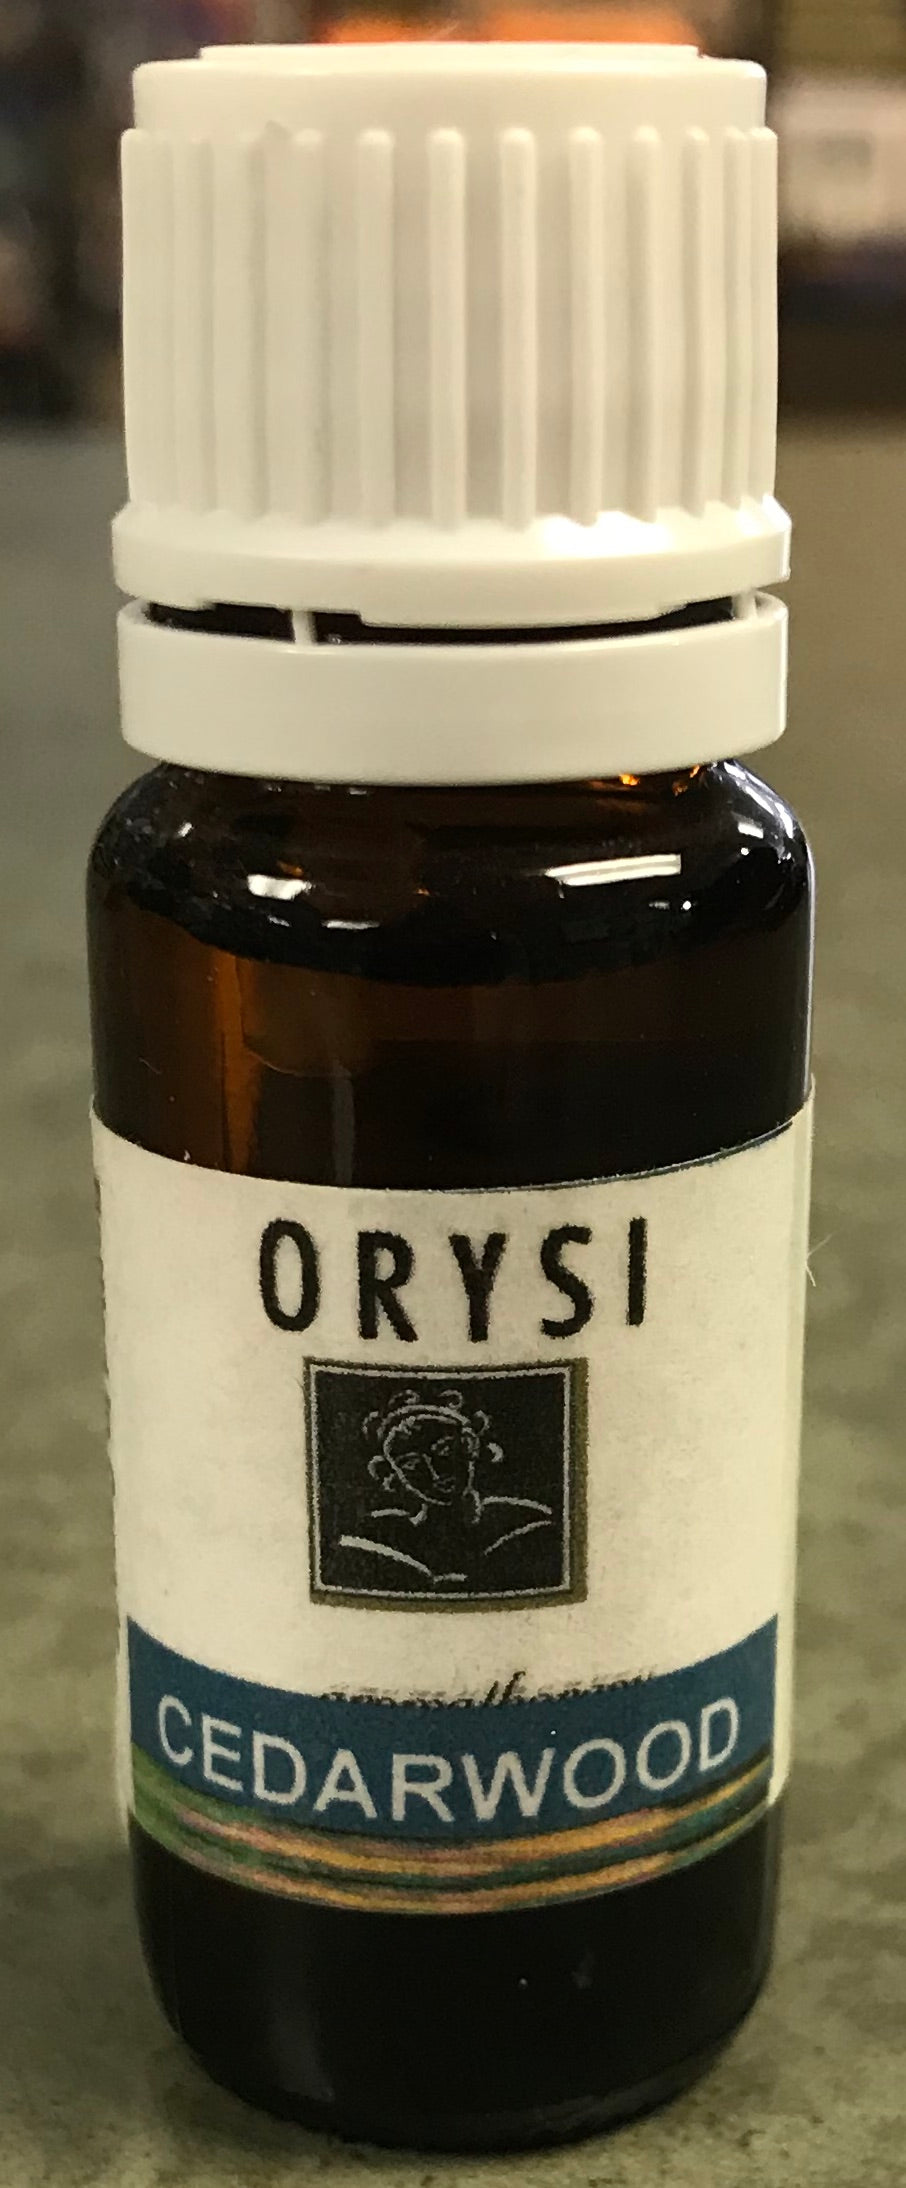 Orysi - Essential oils - Cedarwood